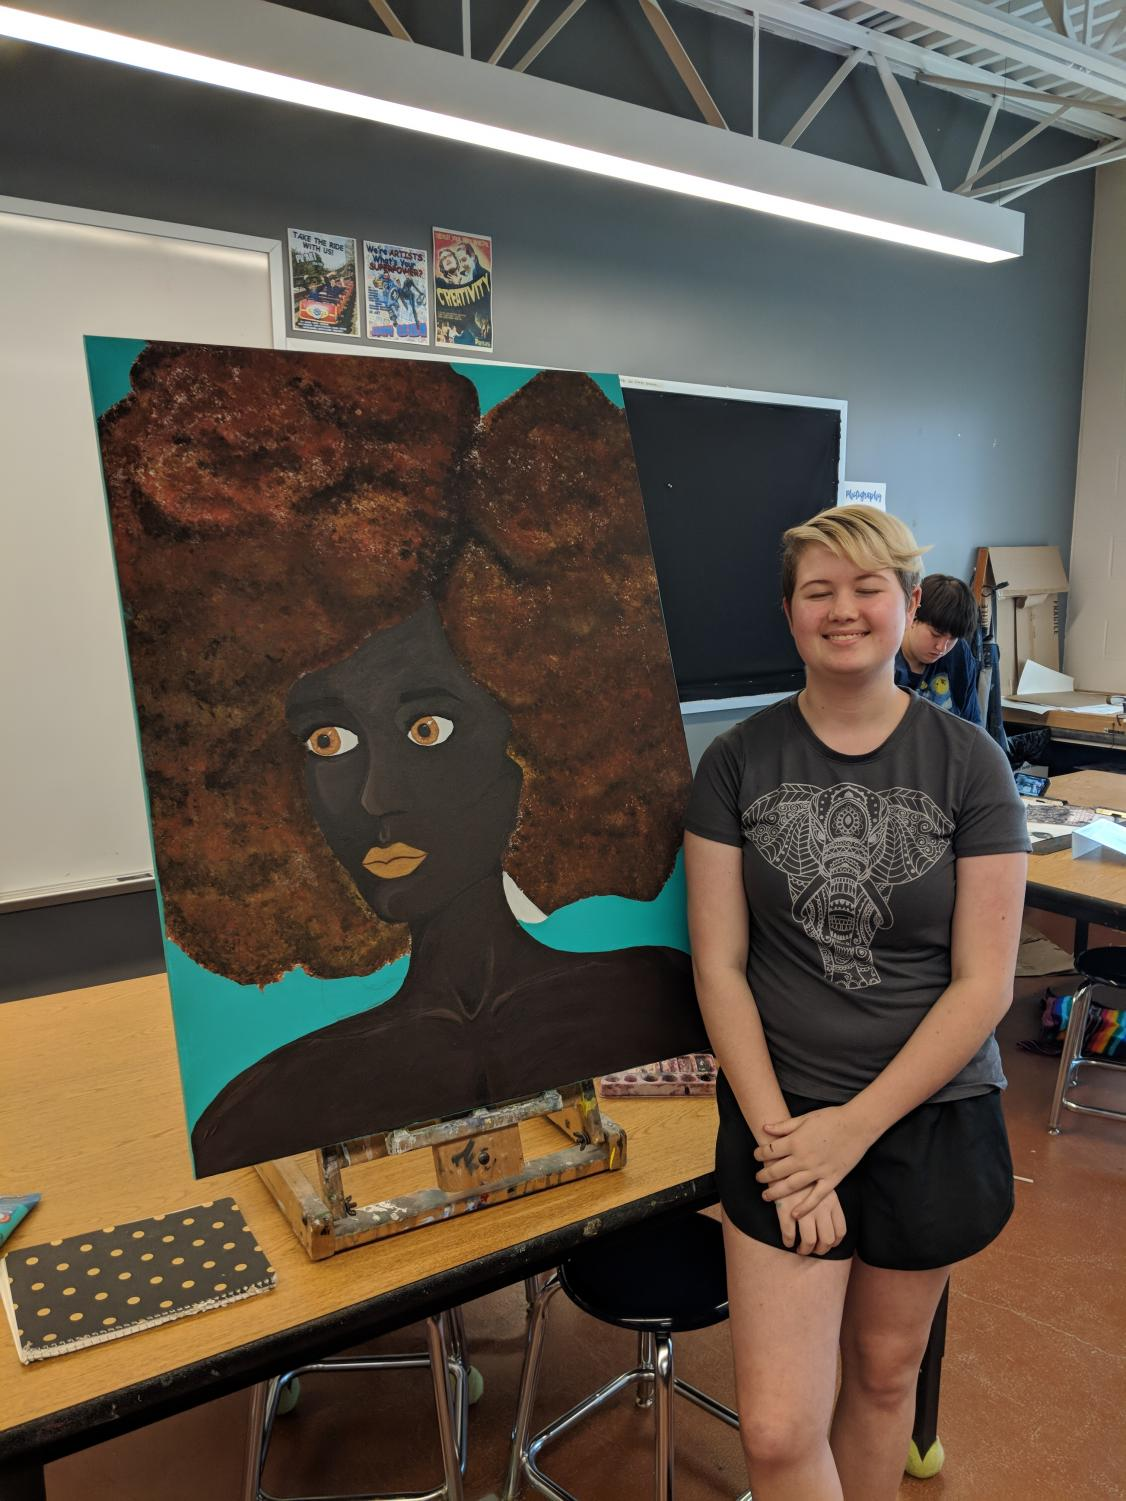 Gillian Geist shows off one of her pieces that she created in the AP Studio Art class.